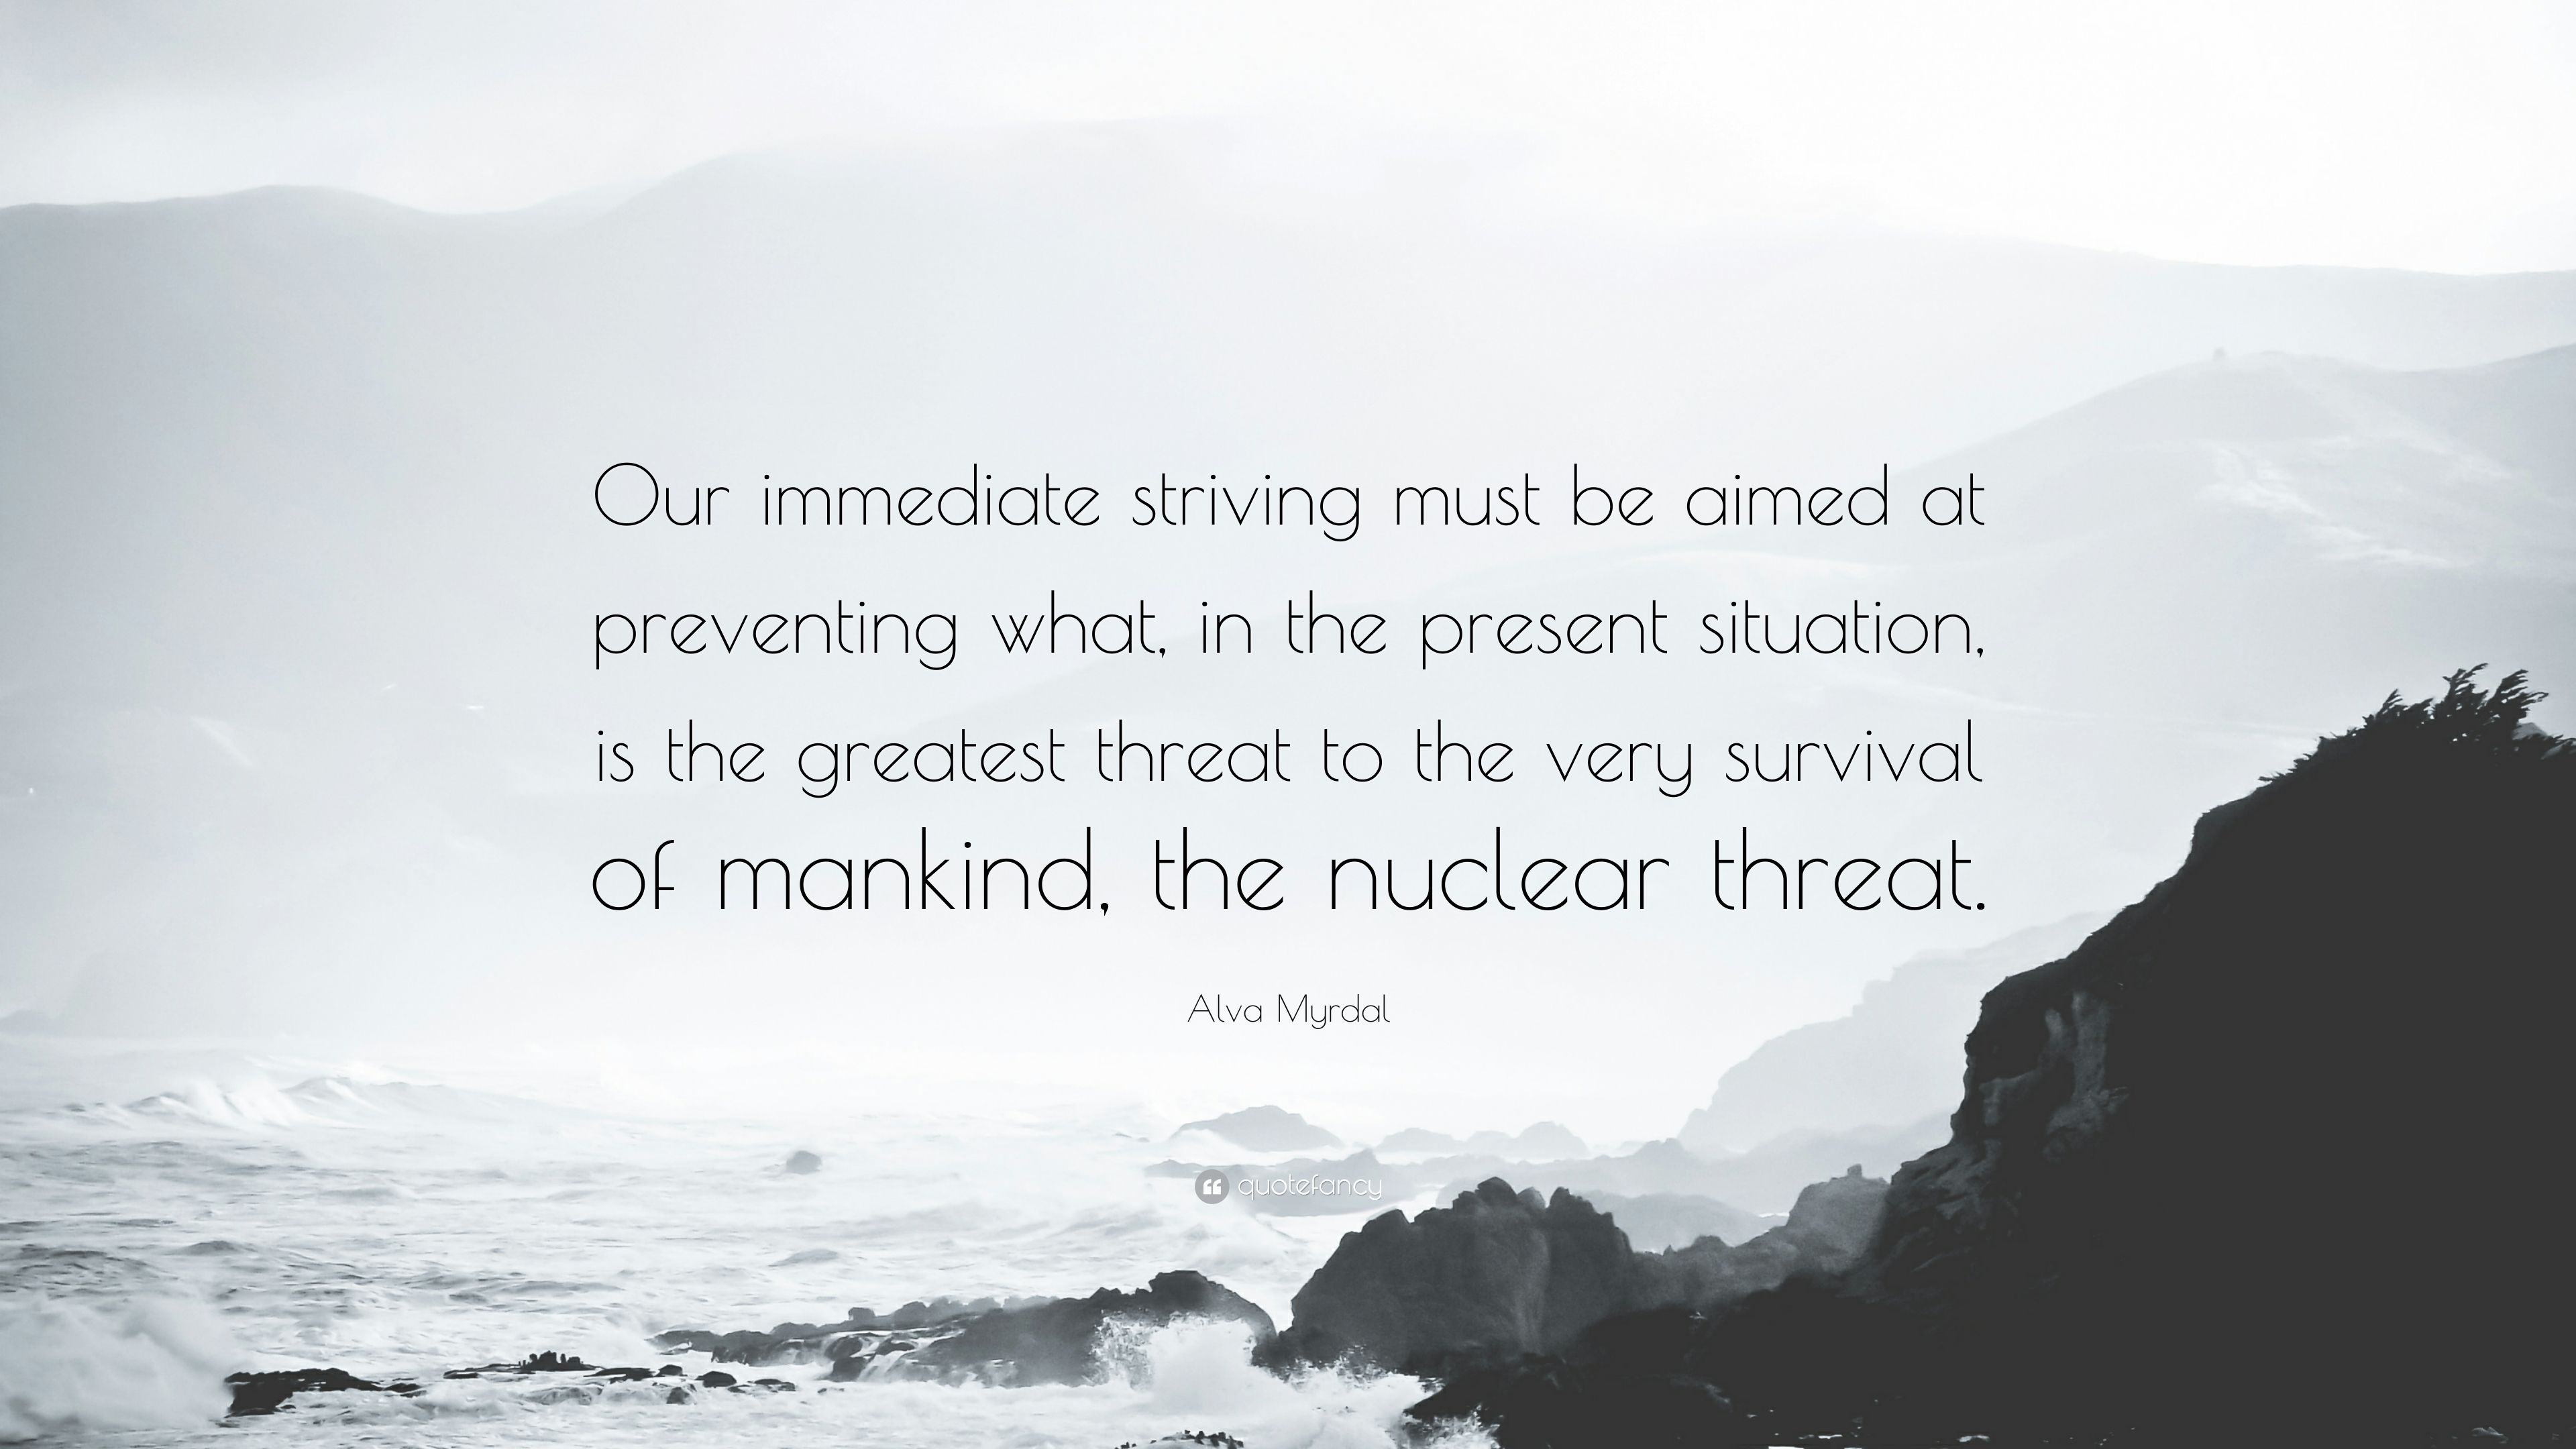 Alva Myrdal Quote Our Immediate Striving Must Be Aimed At Preventing What In The Present Situation Is The Greatest Threat To The Very Su 7 Wallpapers Quotefancy